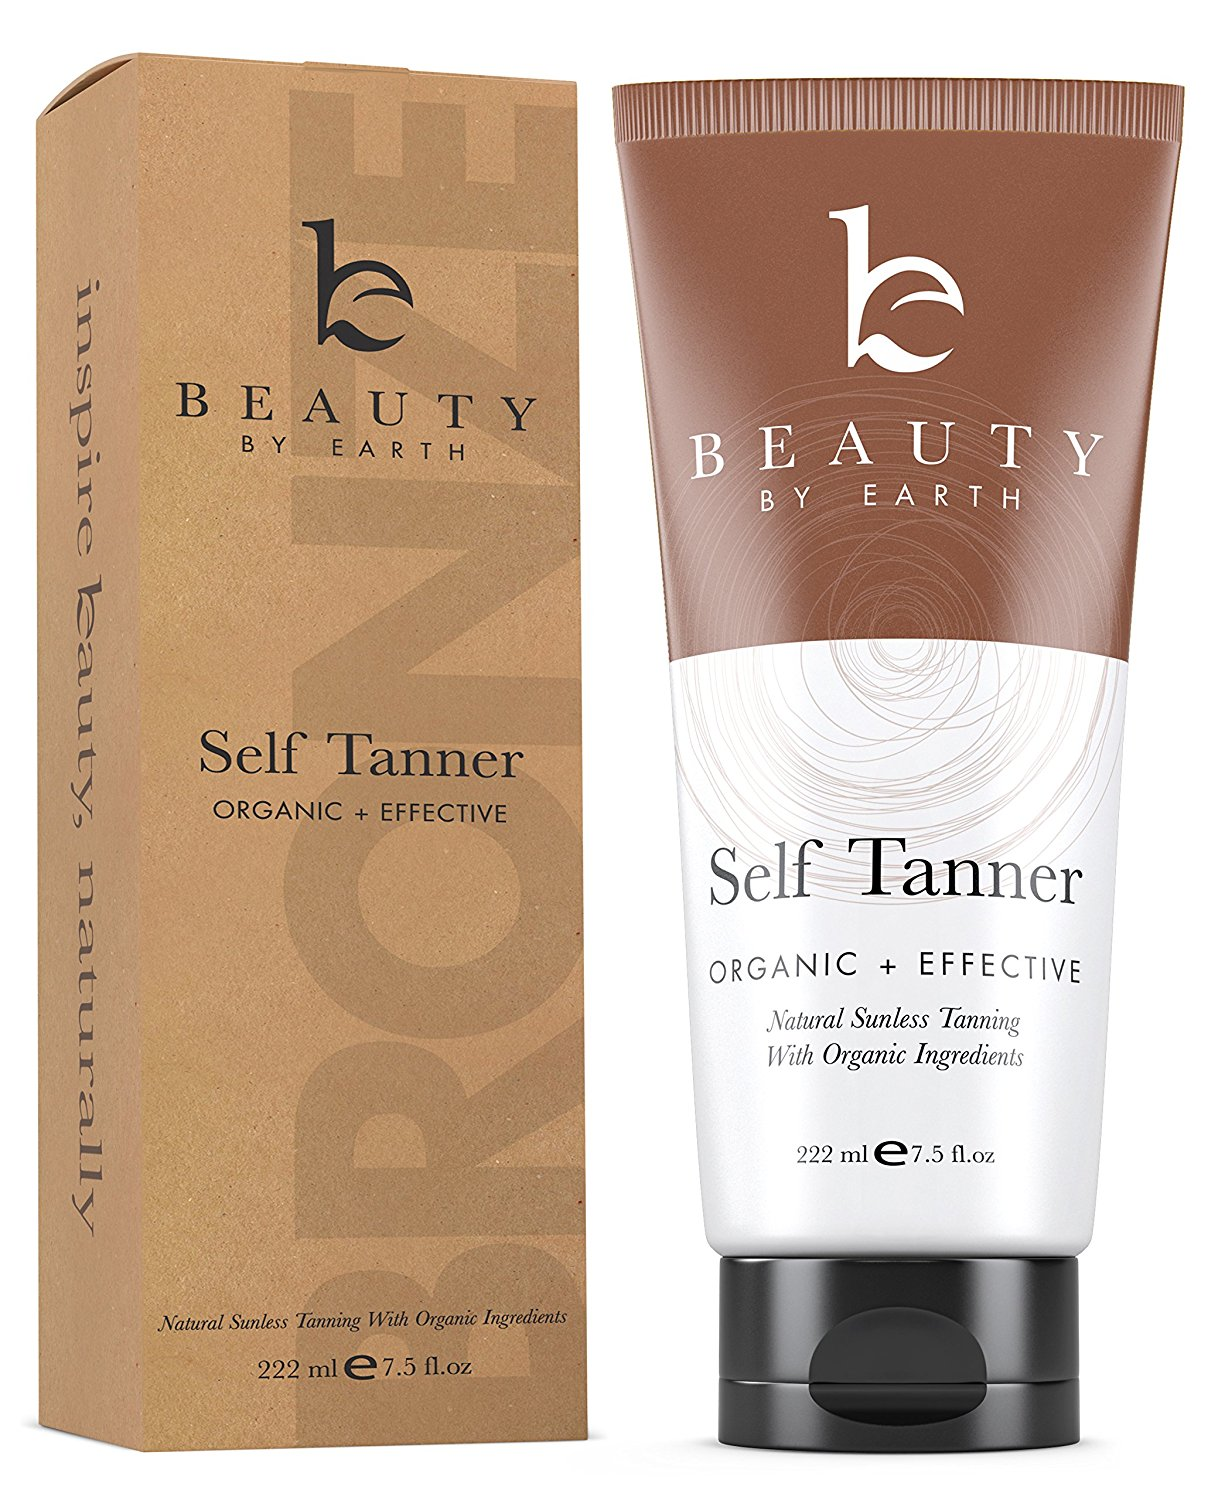 Best Men's Self Tanner 2018: Organic Sunless Tanner for Men for Face and Body